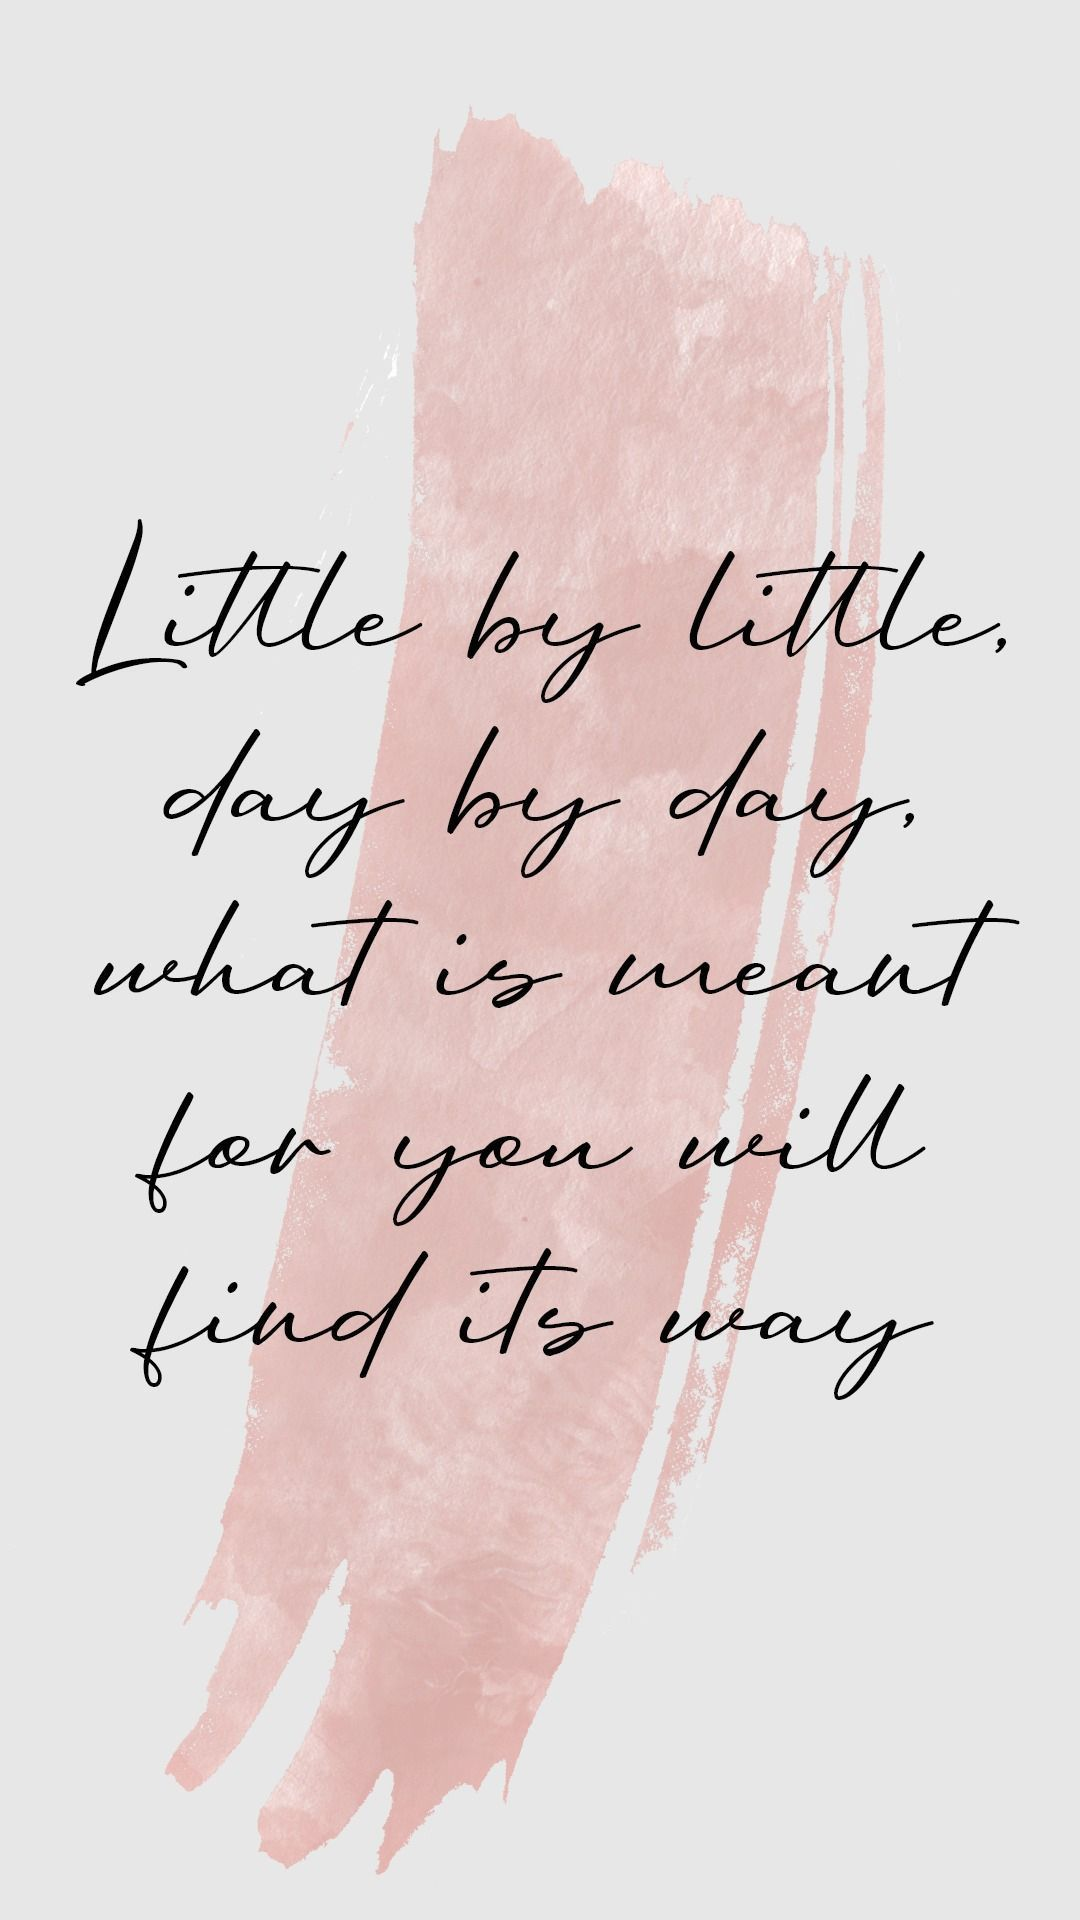 9 Inspirational Quotes With Images Free Detail Download and use 7000 inspiration quotes stock photos for free.